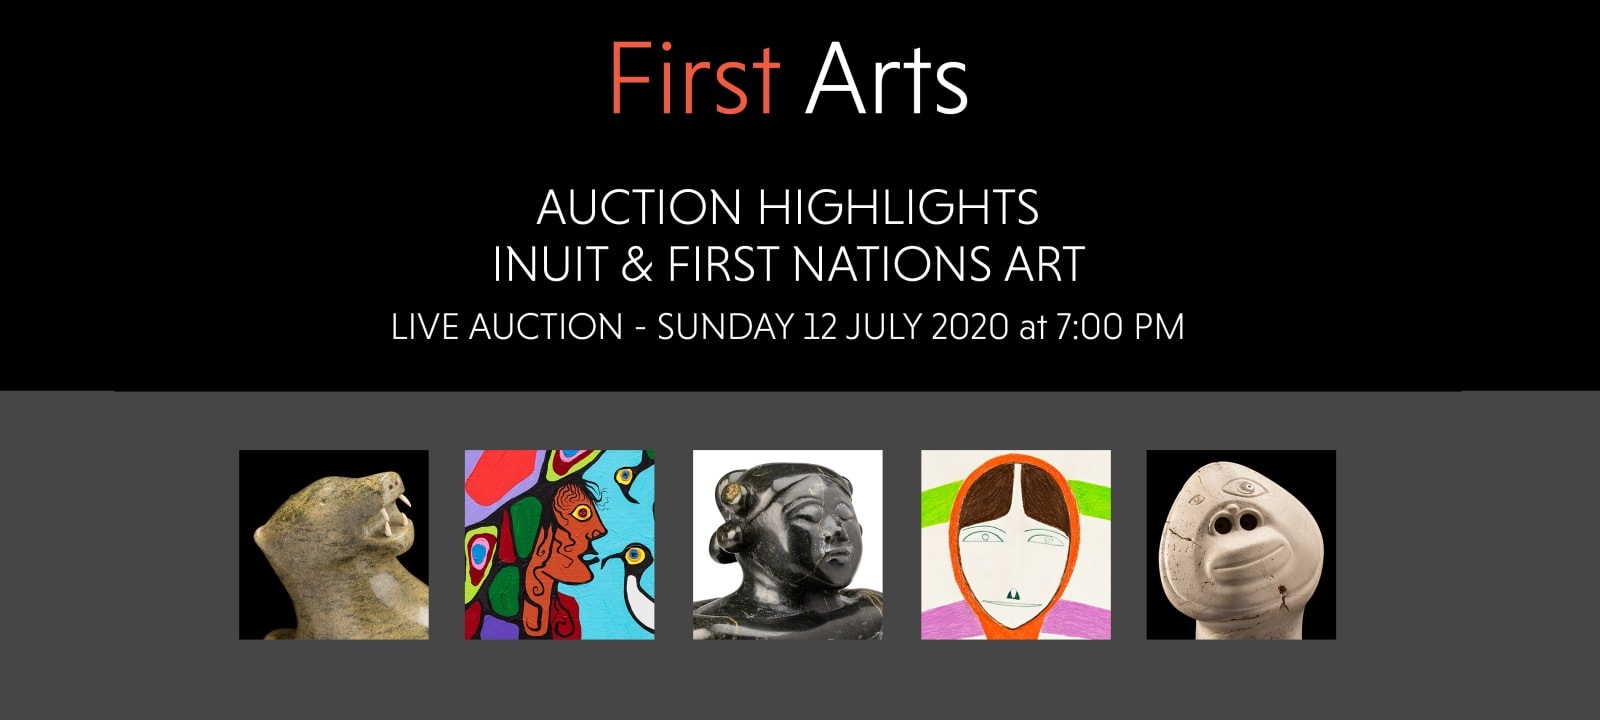 Highlights from our Upcoming July 2020 Live Auction